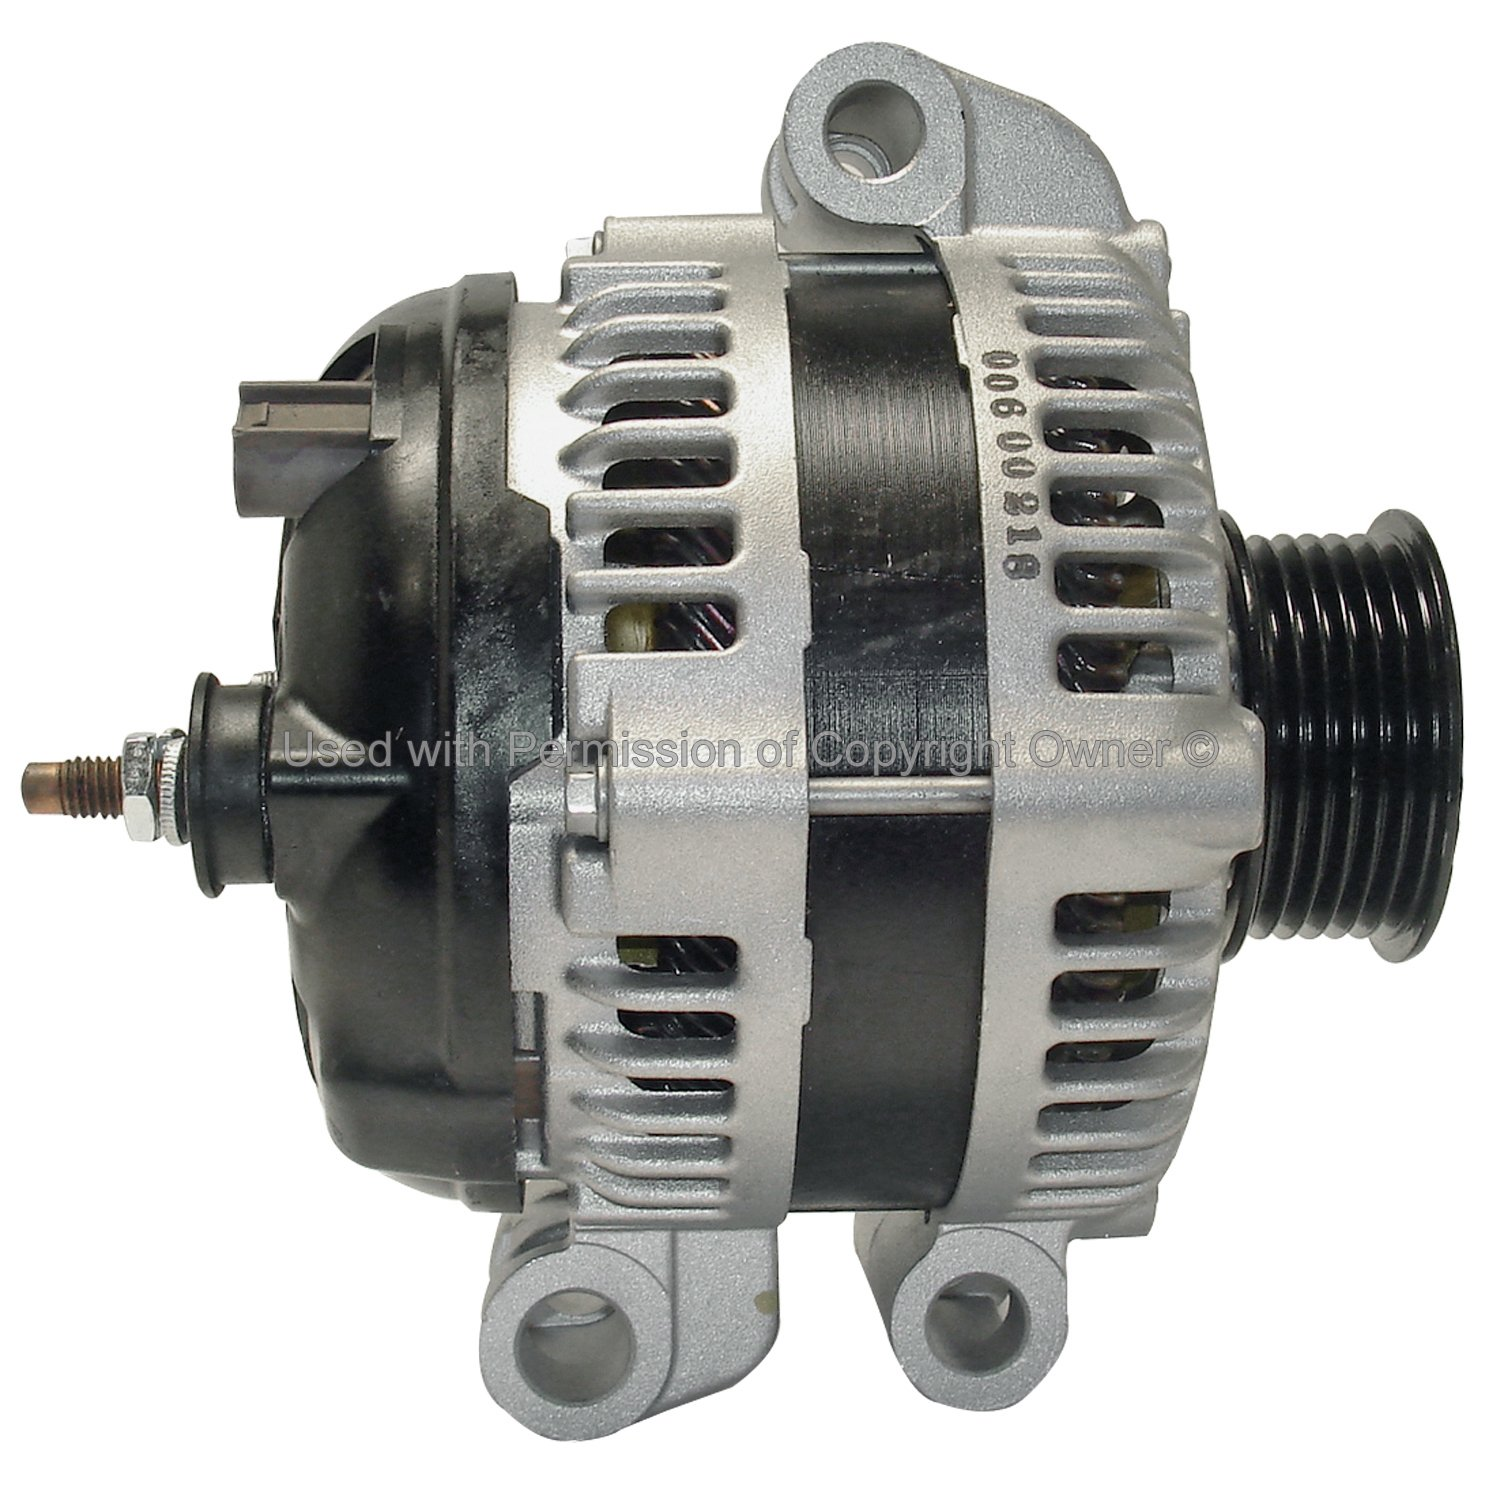 2006 Chrysler 300 Alternator Ma 15446